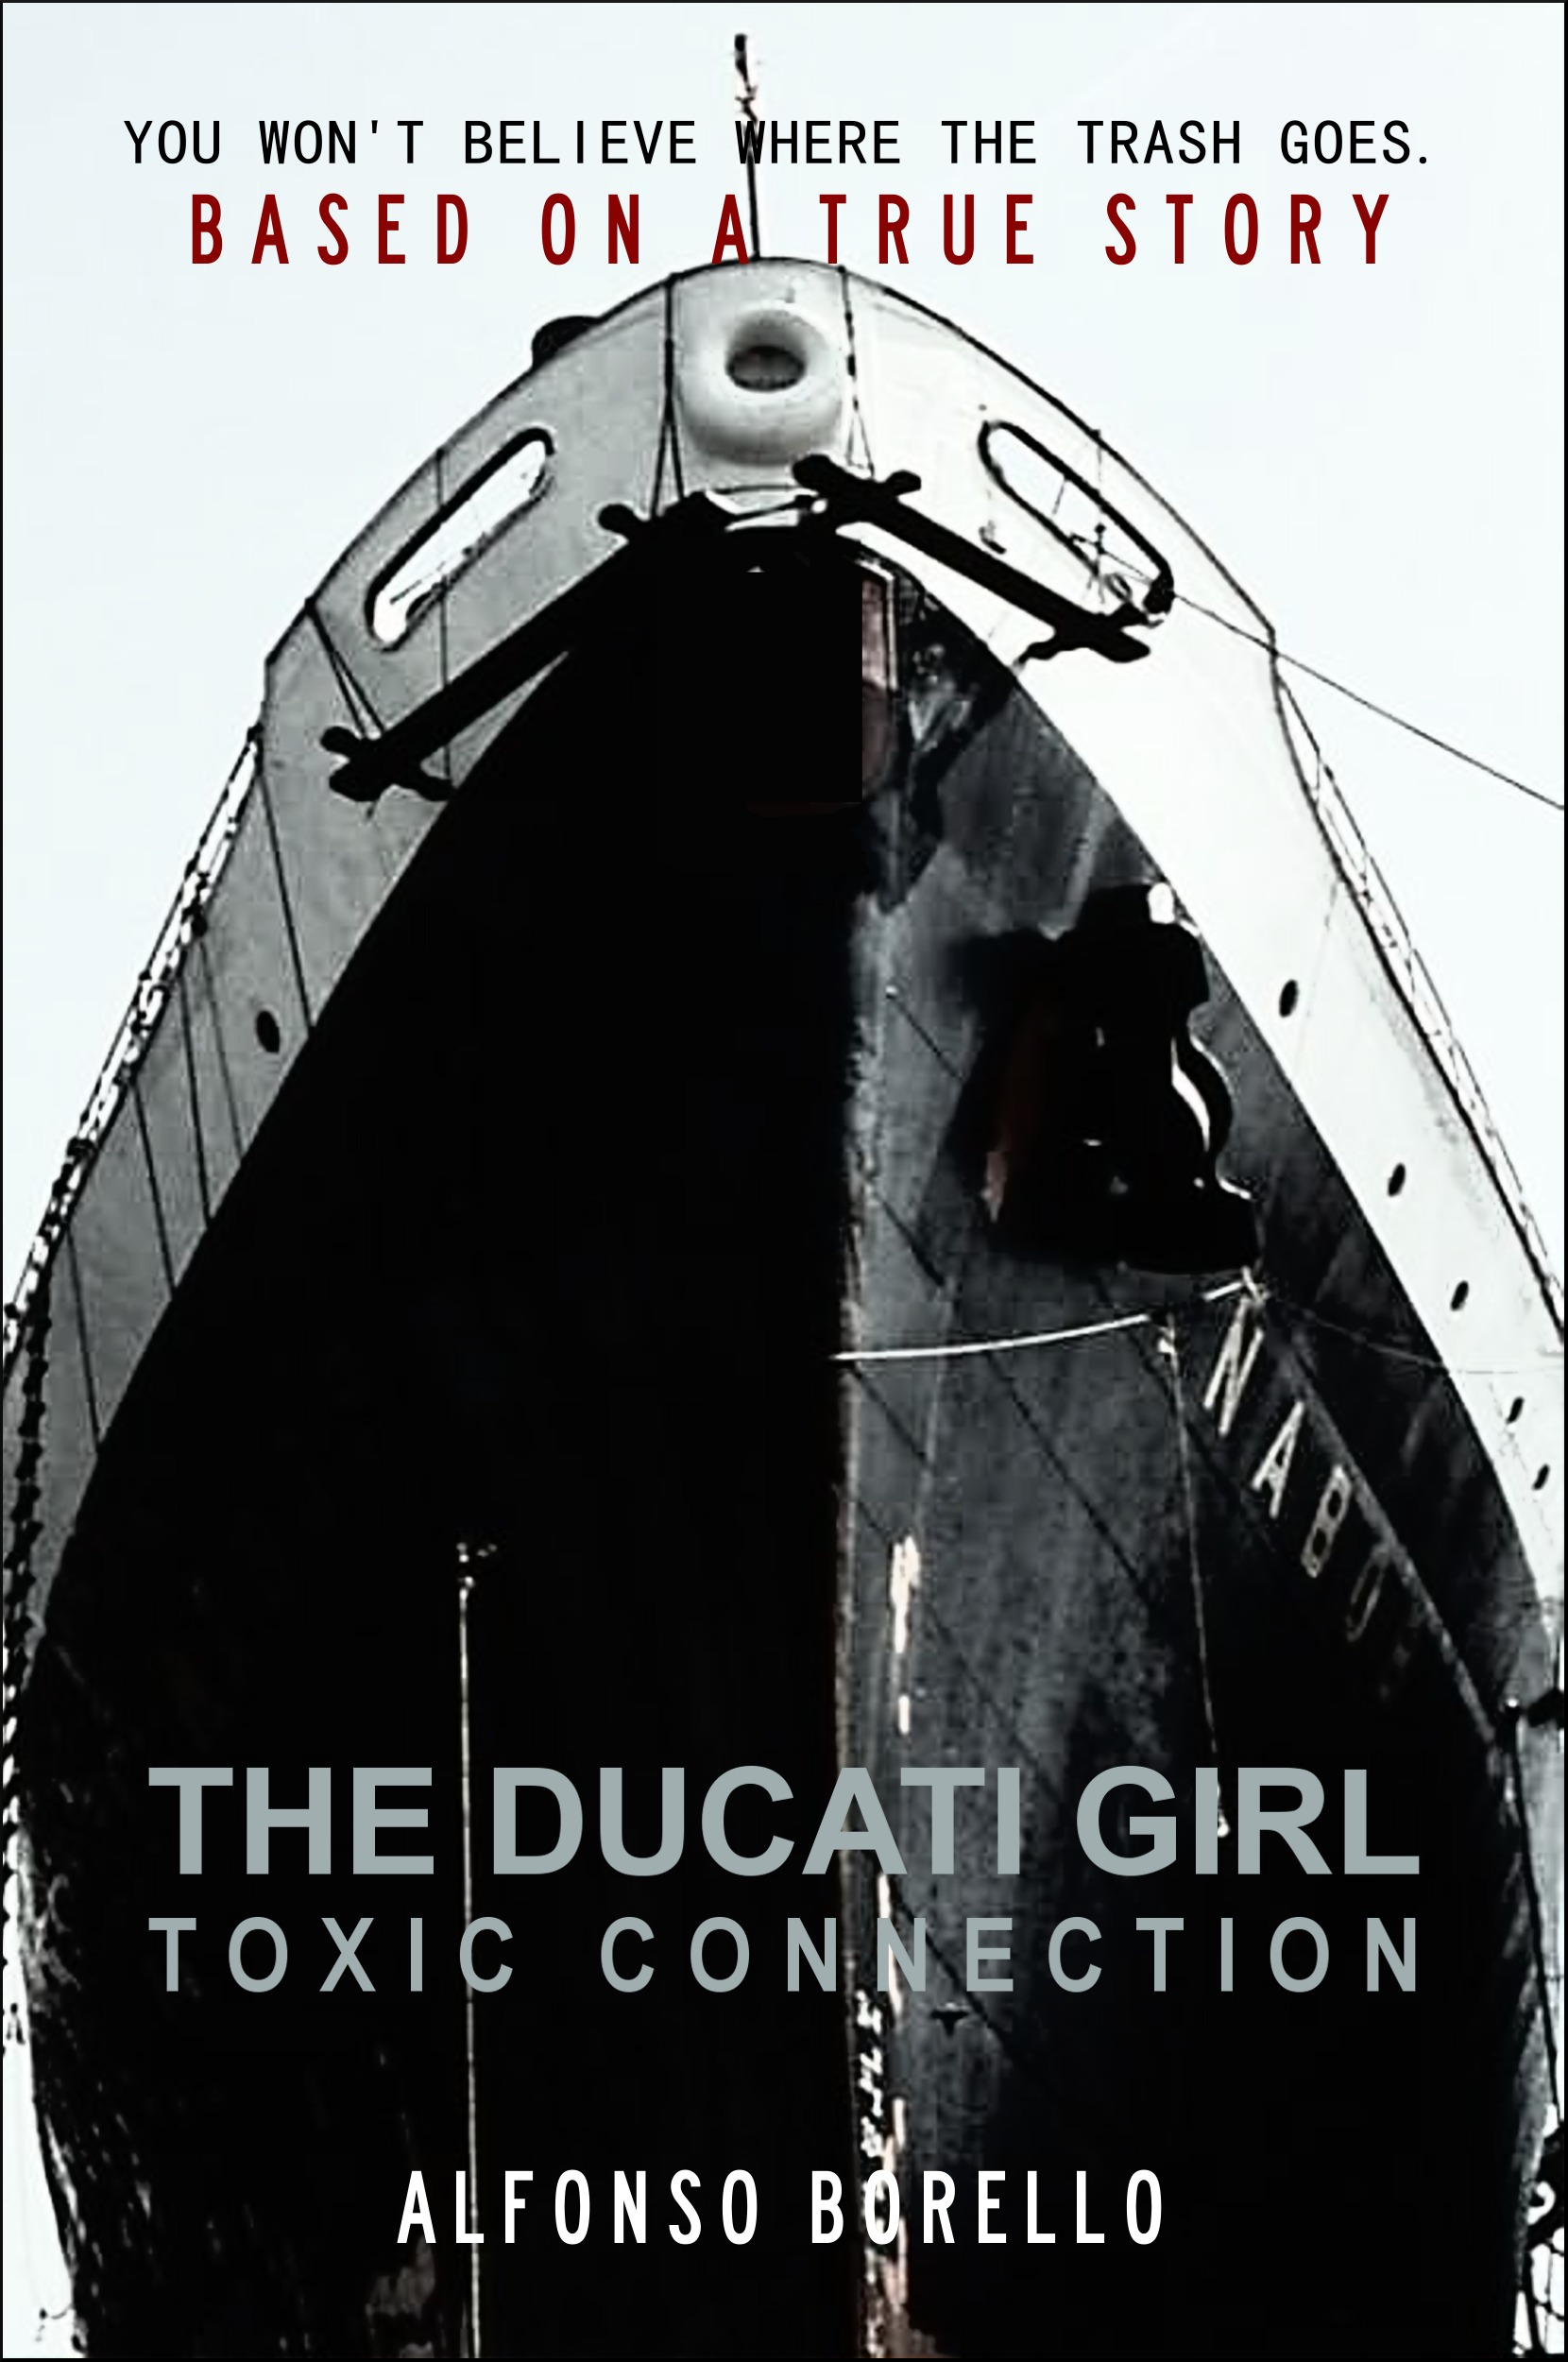 The Ducati Girl: Toxic Connection